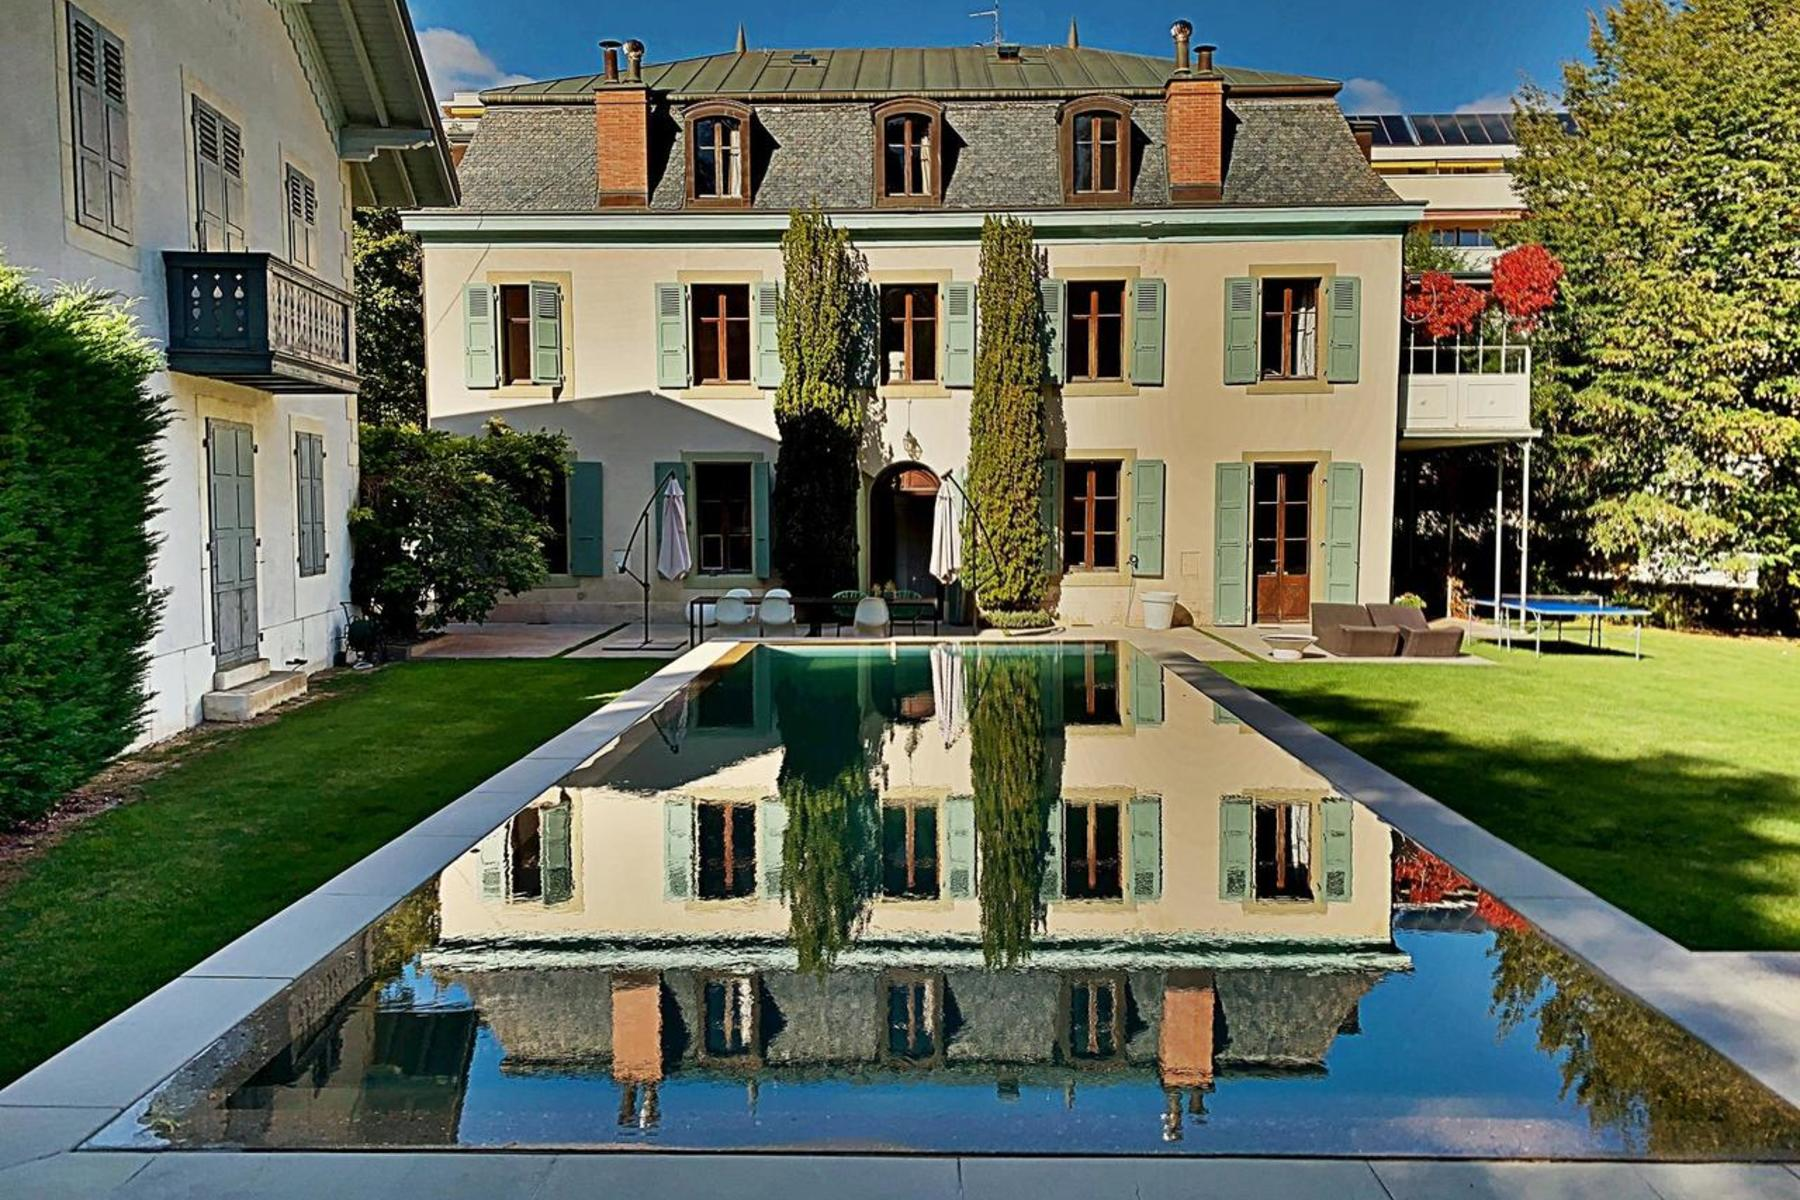 Single Family Homes for Sale at Magnificent Master property with large pavilion Versoix Versoix, Geneva 1290 Switzerland